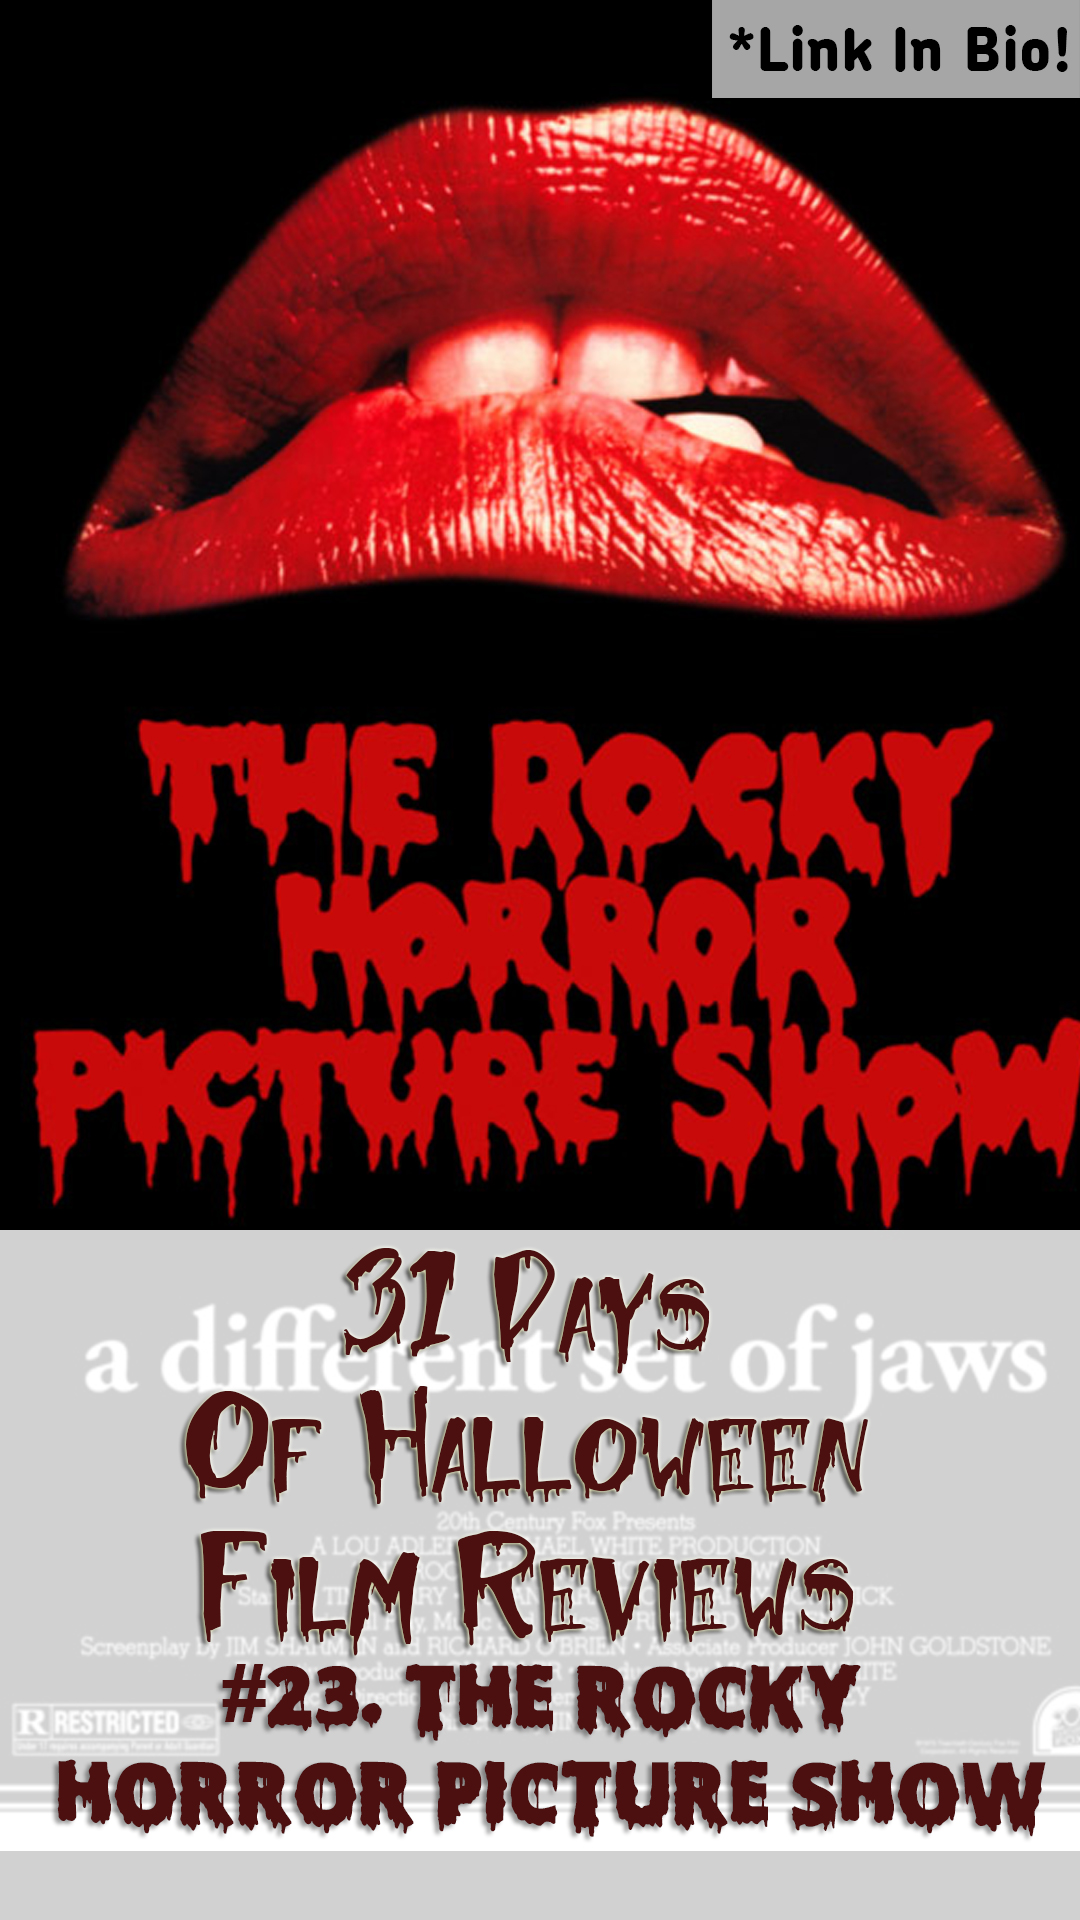 The Rocky Horror Picture Show Film Review